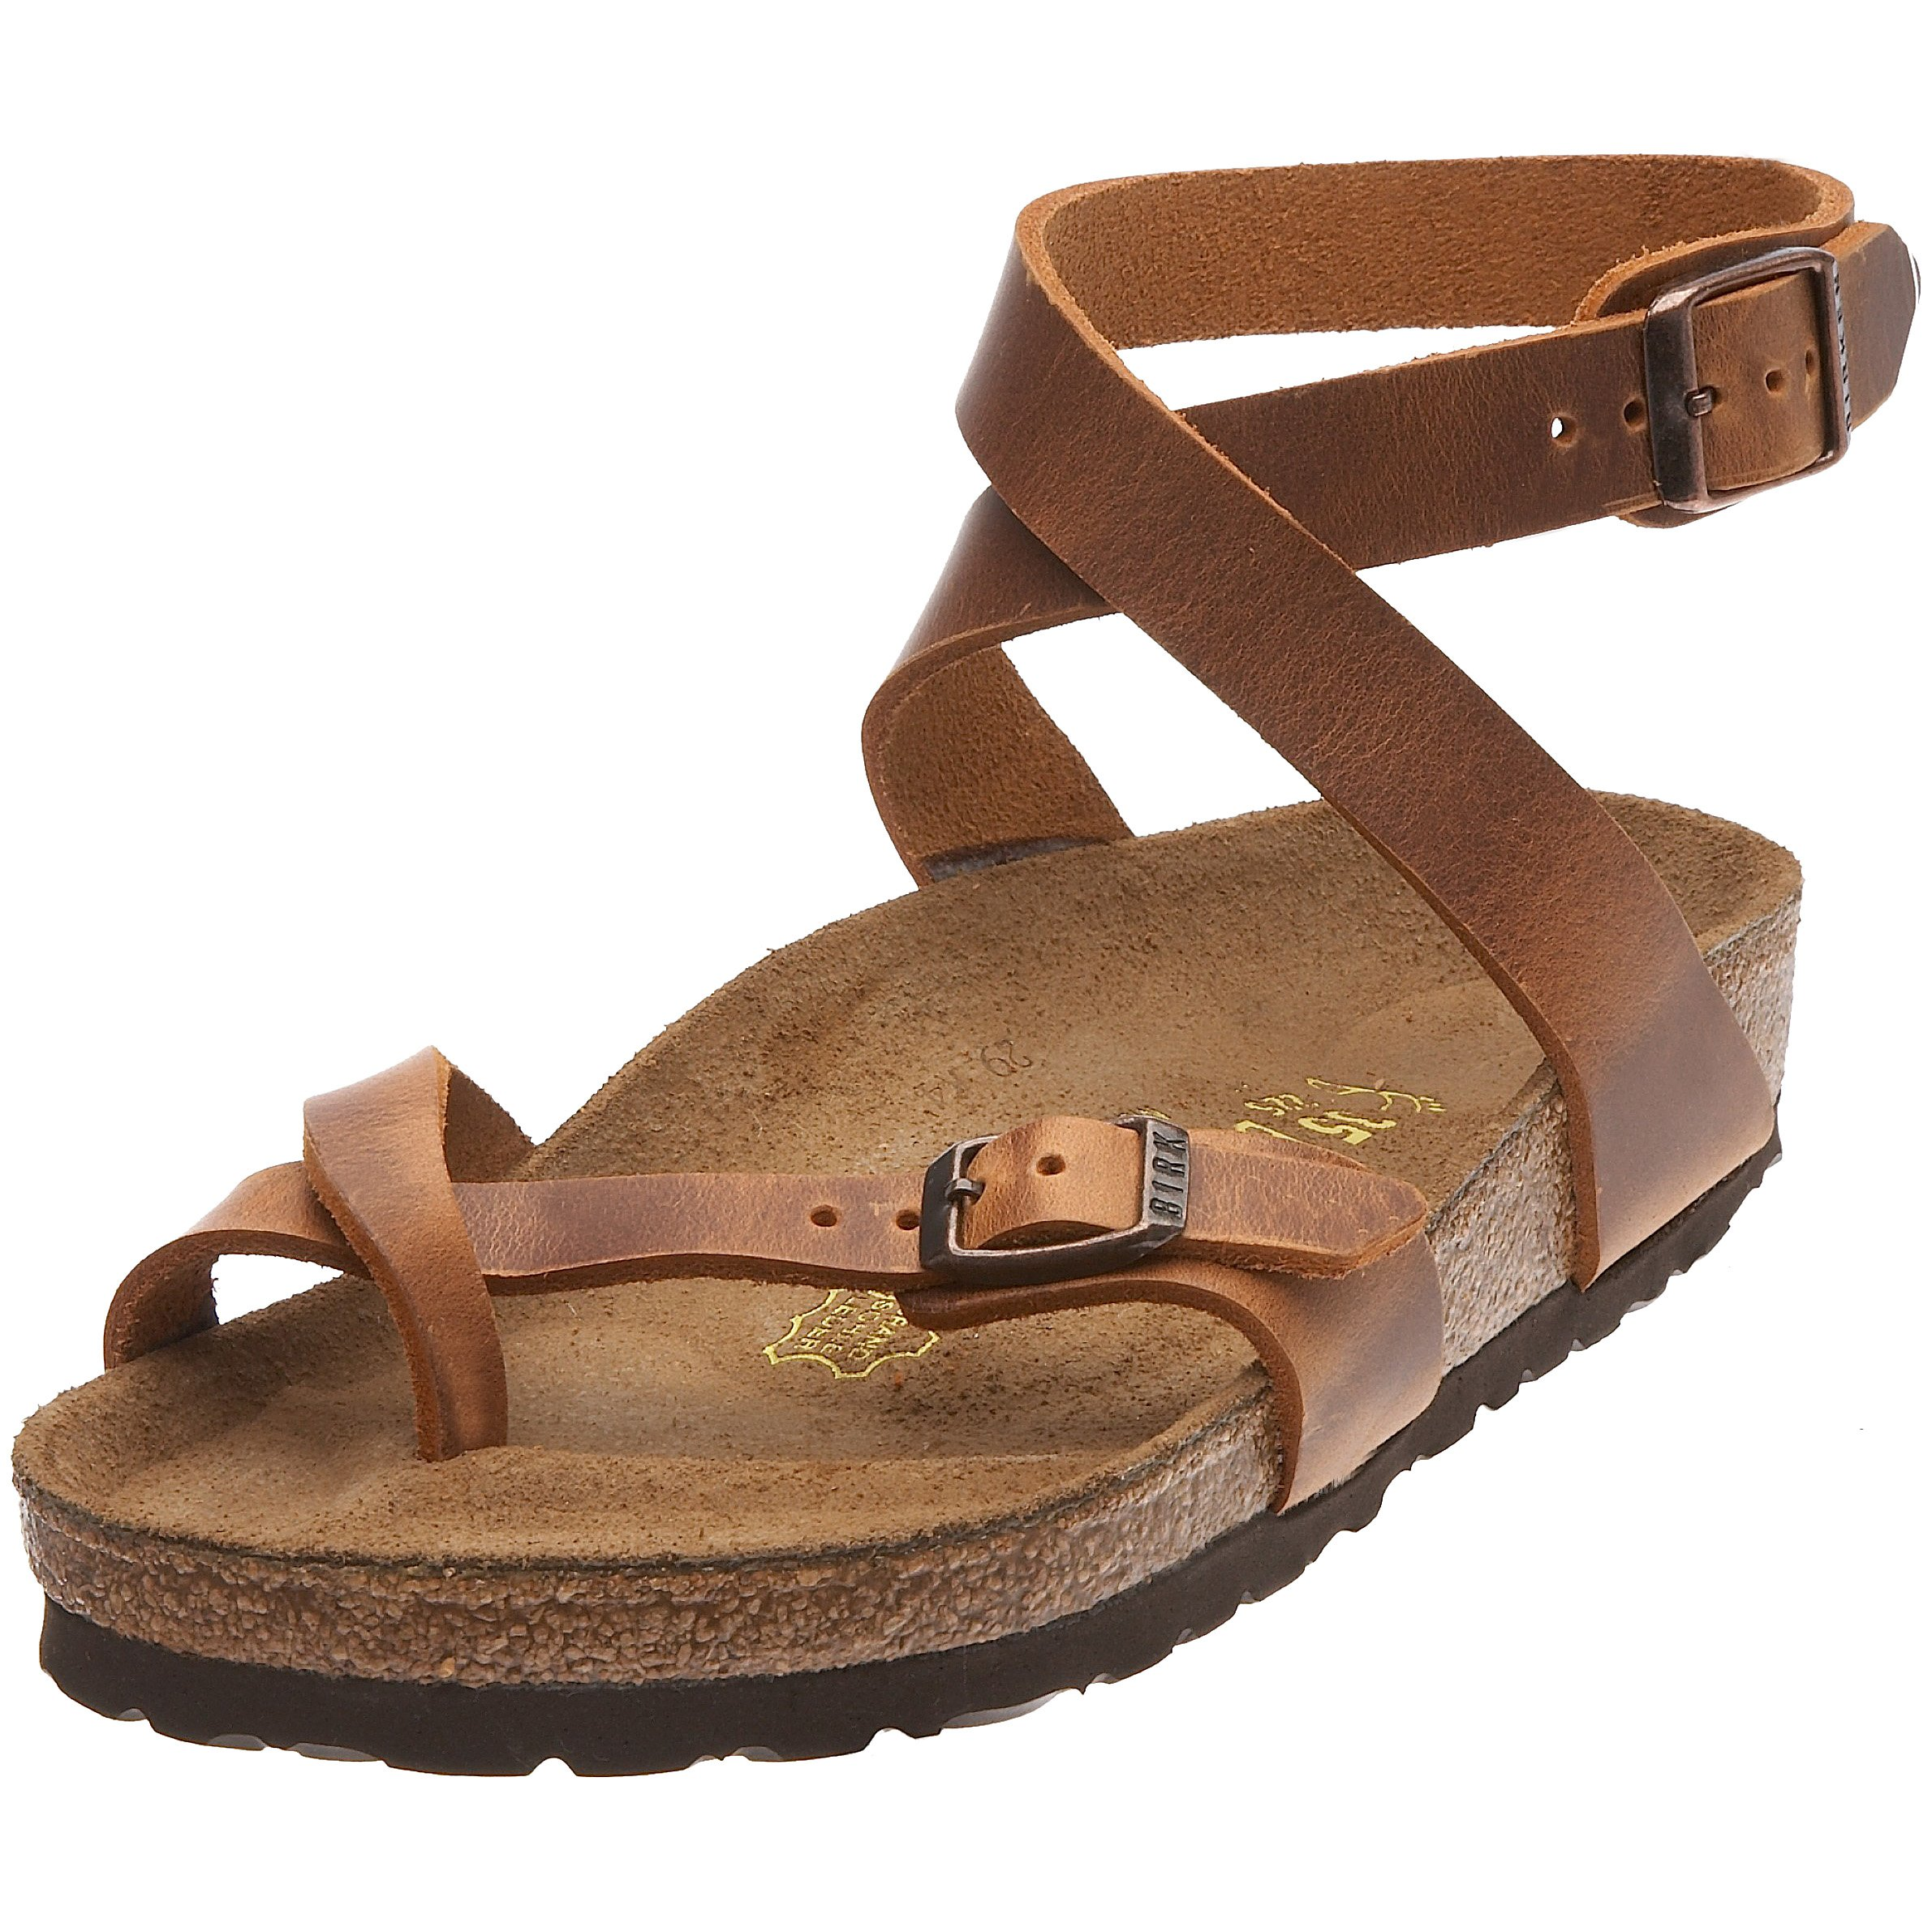 1df44e1e36f Galleon - Birkenstock Womens Yara In Antique Brown From Leather Thong 38.0 EU  N